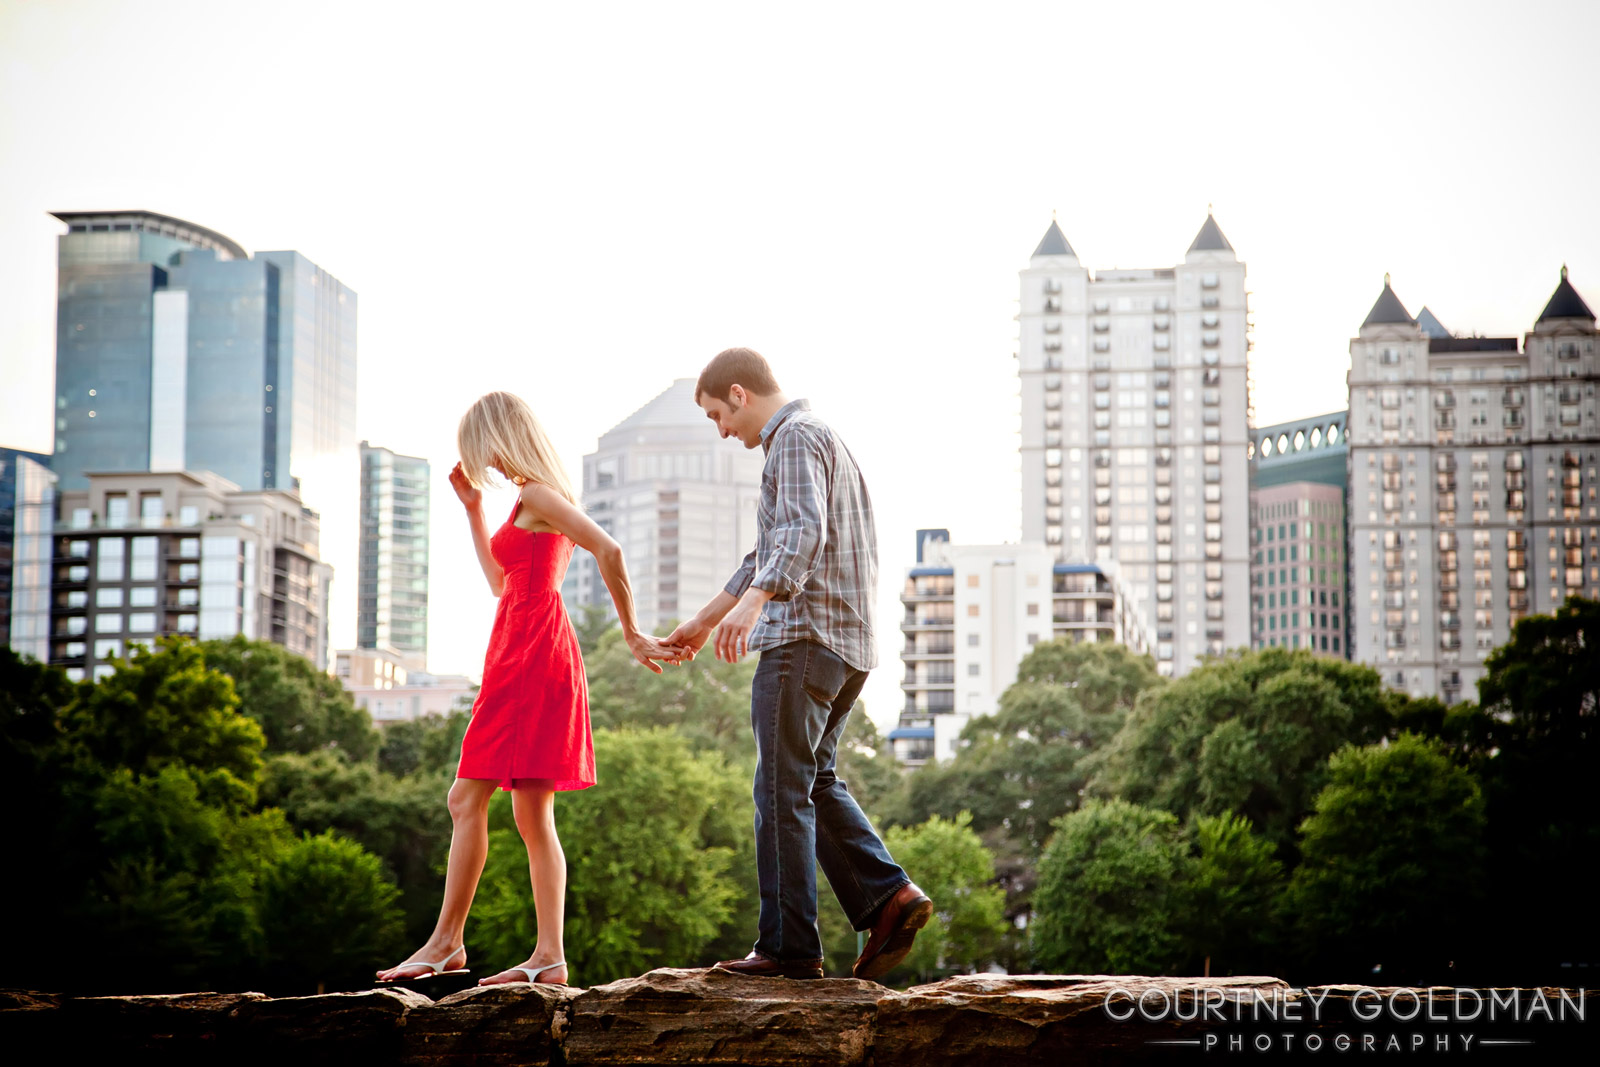 Atlanta-Couples-Engagement-Proposal-Photography-by-Courtney-Goldman-01.jpg